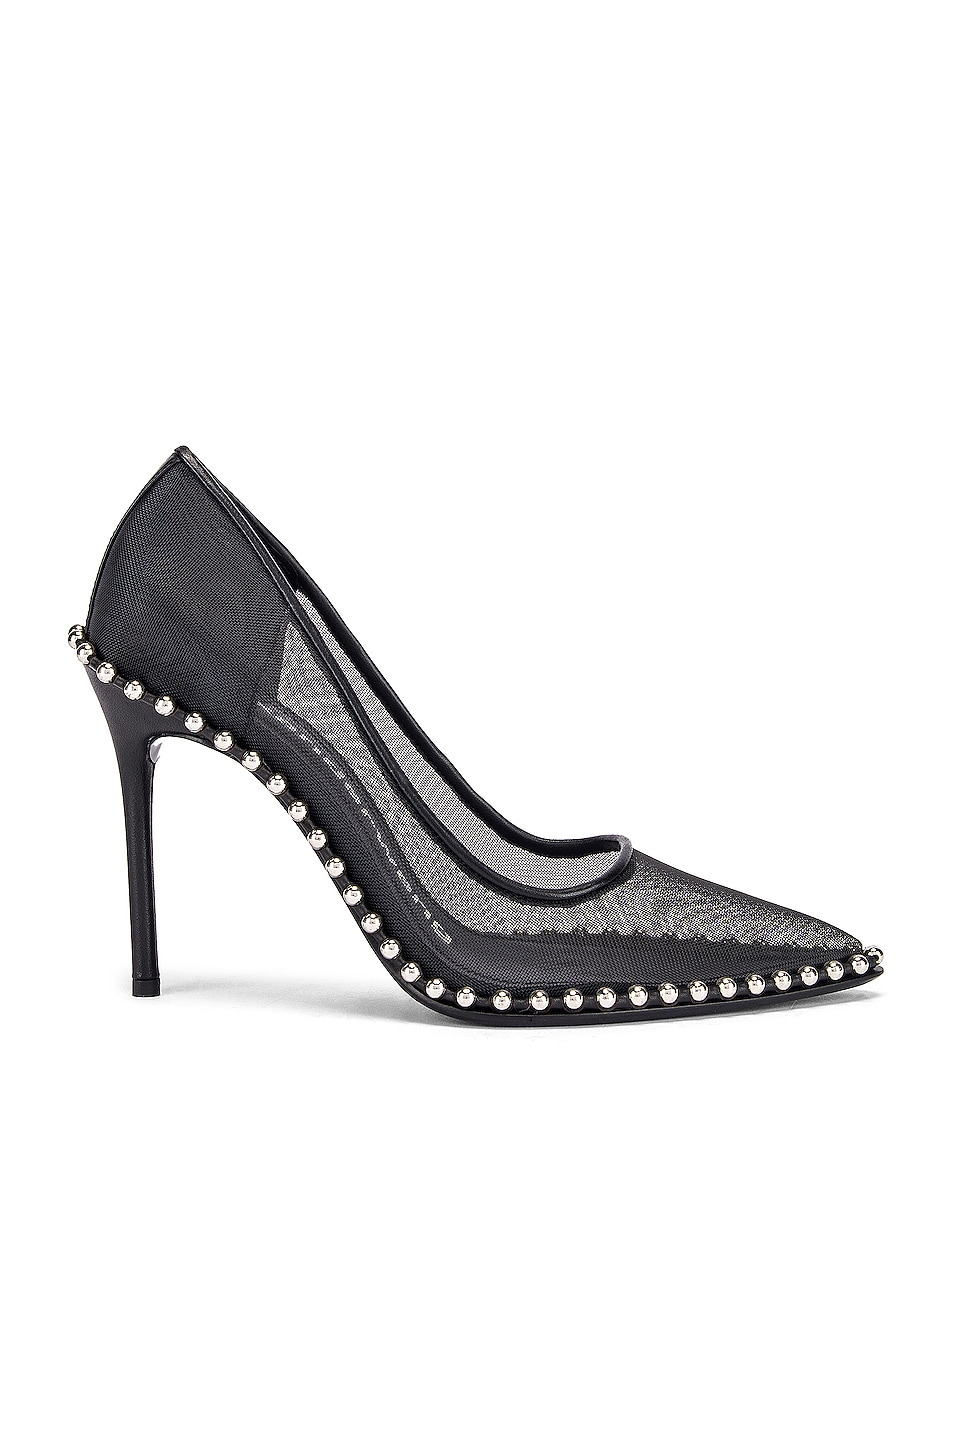 Image 1 of Alexander Wang Rie Mesh Heel in Black